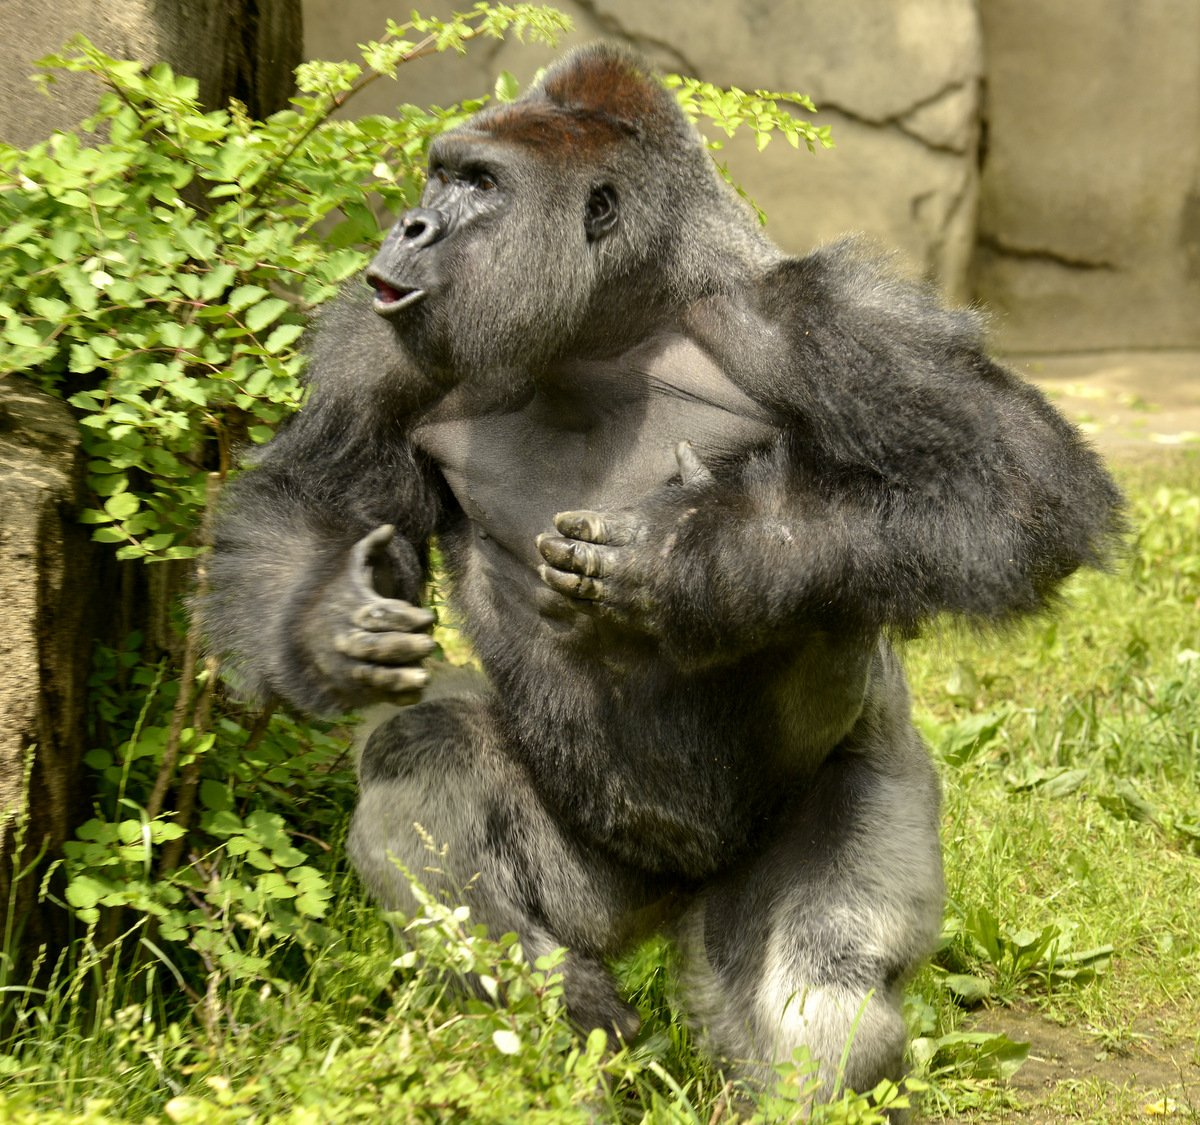 Happy 17th birthday to silverback gorilla Harambe! https://t.co/FeITuw0hPb https://t.co/FrfWUSKacV